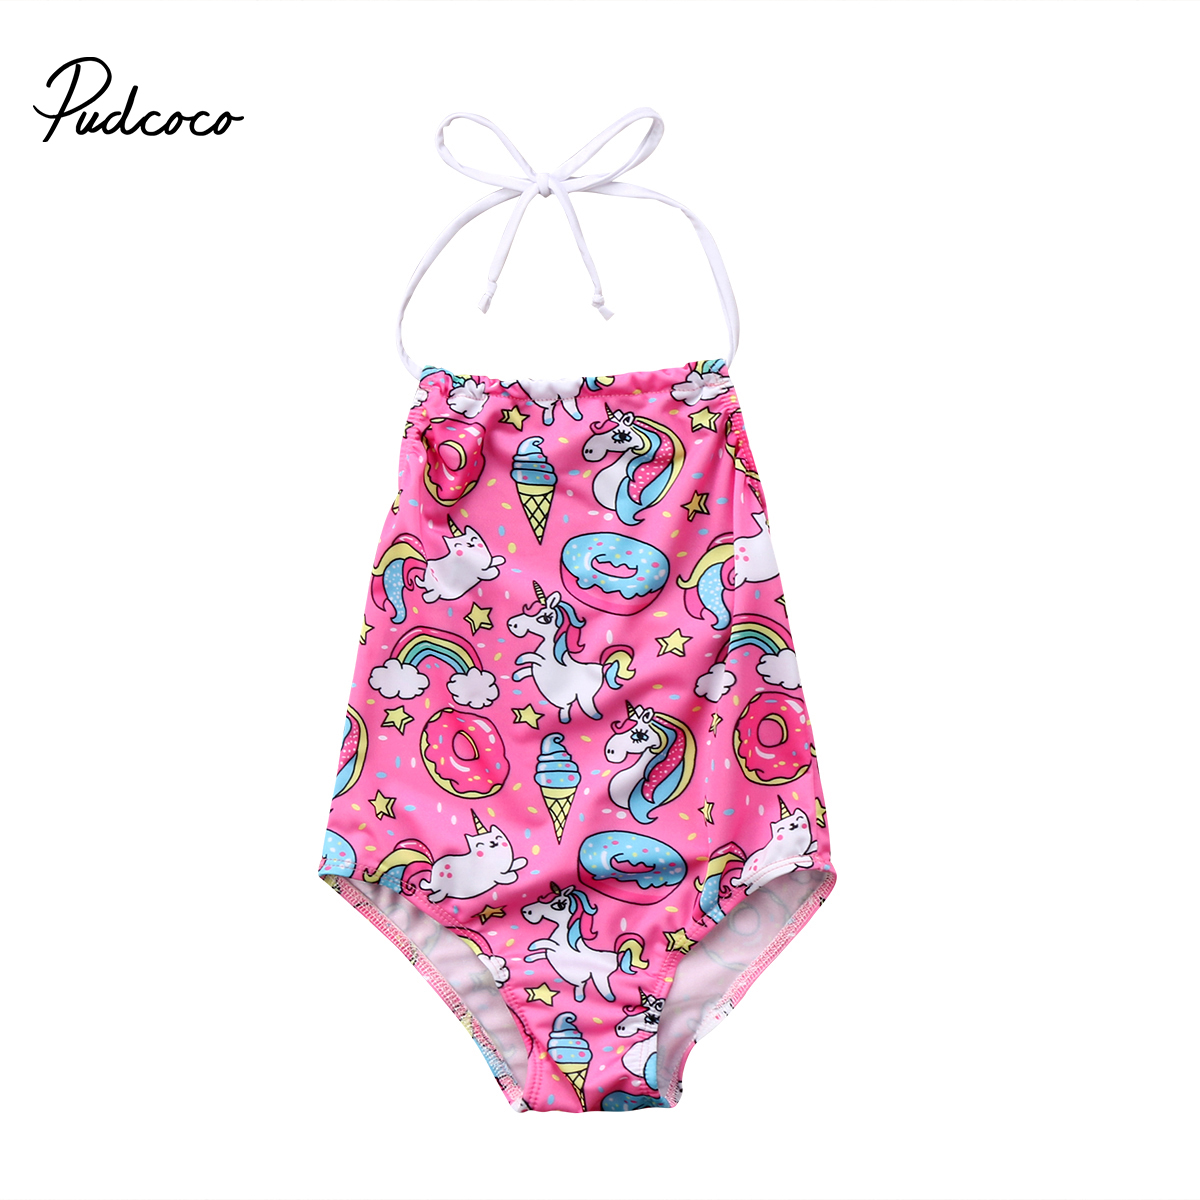 2018 Babies Unicorn Halter One-piece Swimsuit Kids Baby Girls One piece Beach Suits Swimsuit Swimwear Bathing Suit